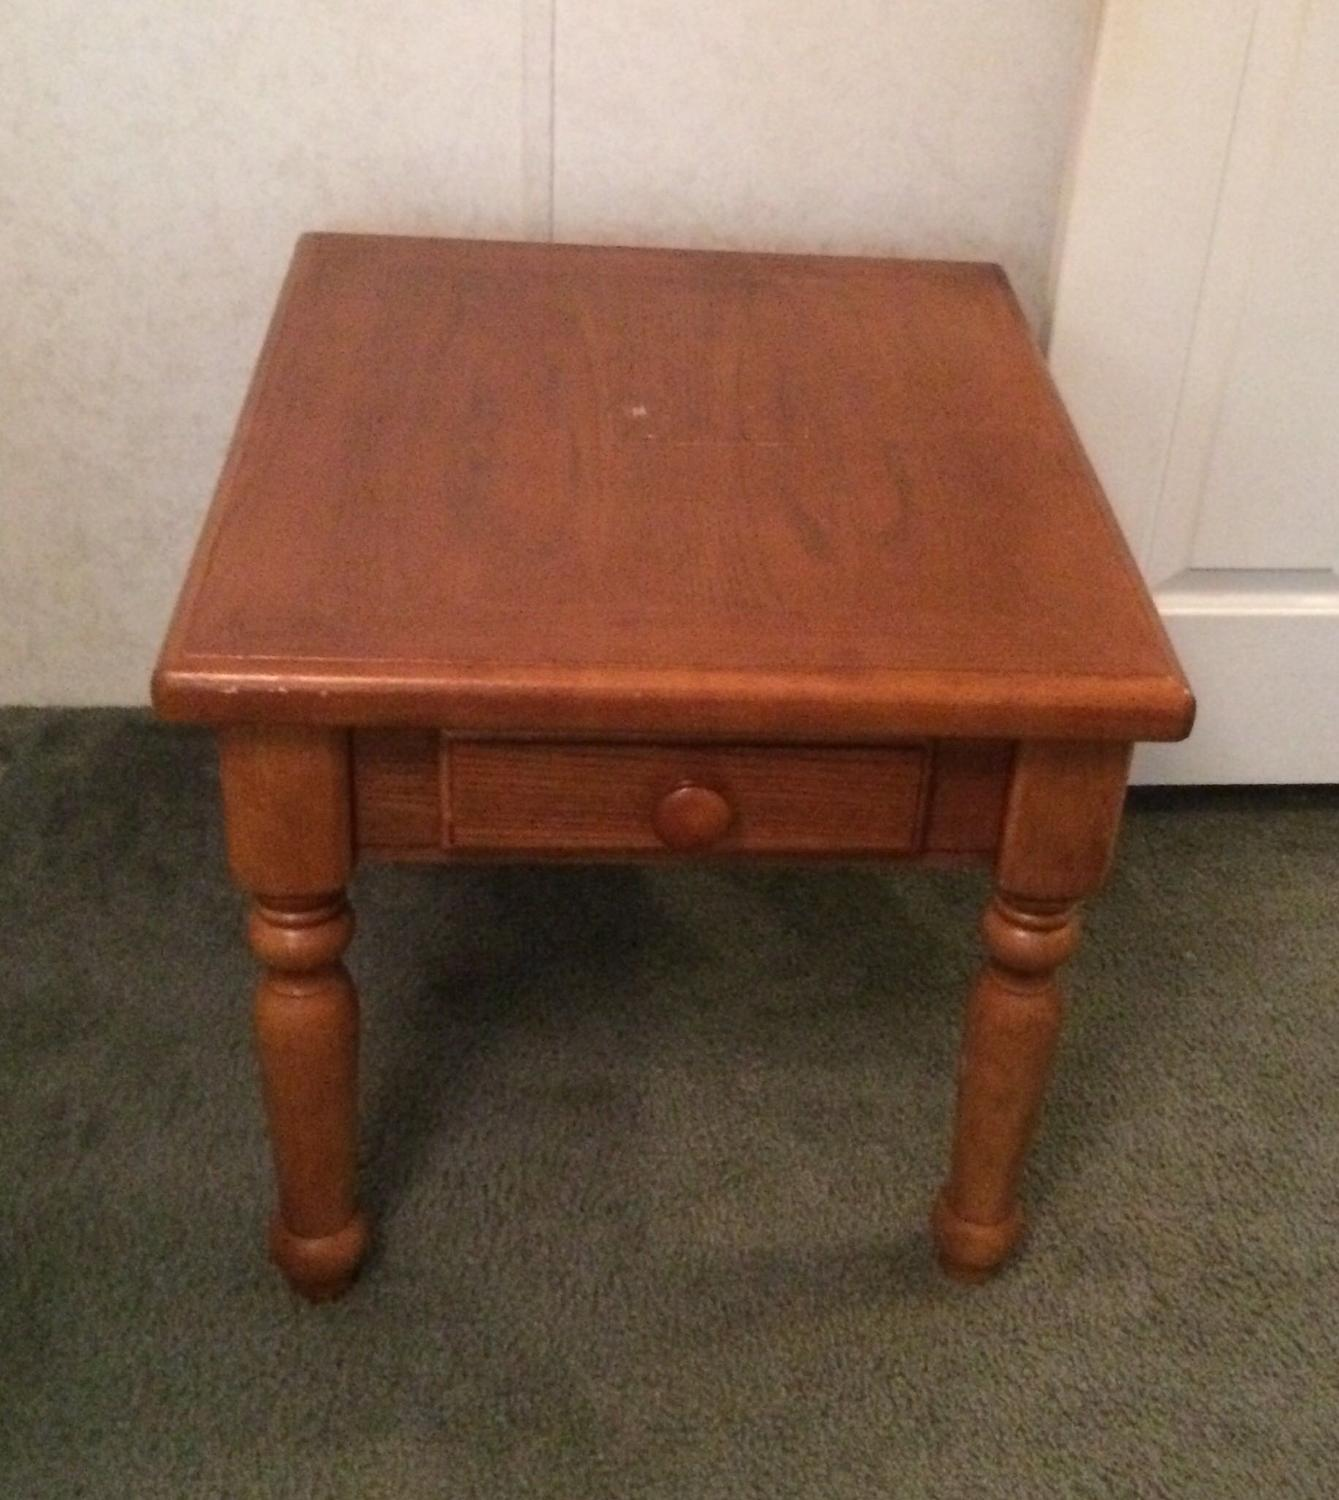 Best Price Drop Real Wood End Table 1 For Sale In Sumter South Carolina For 2018